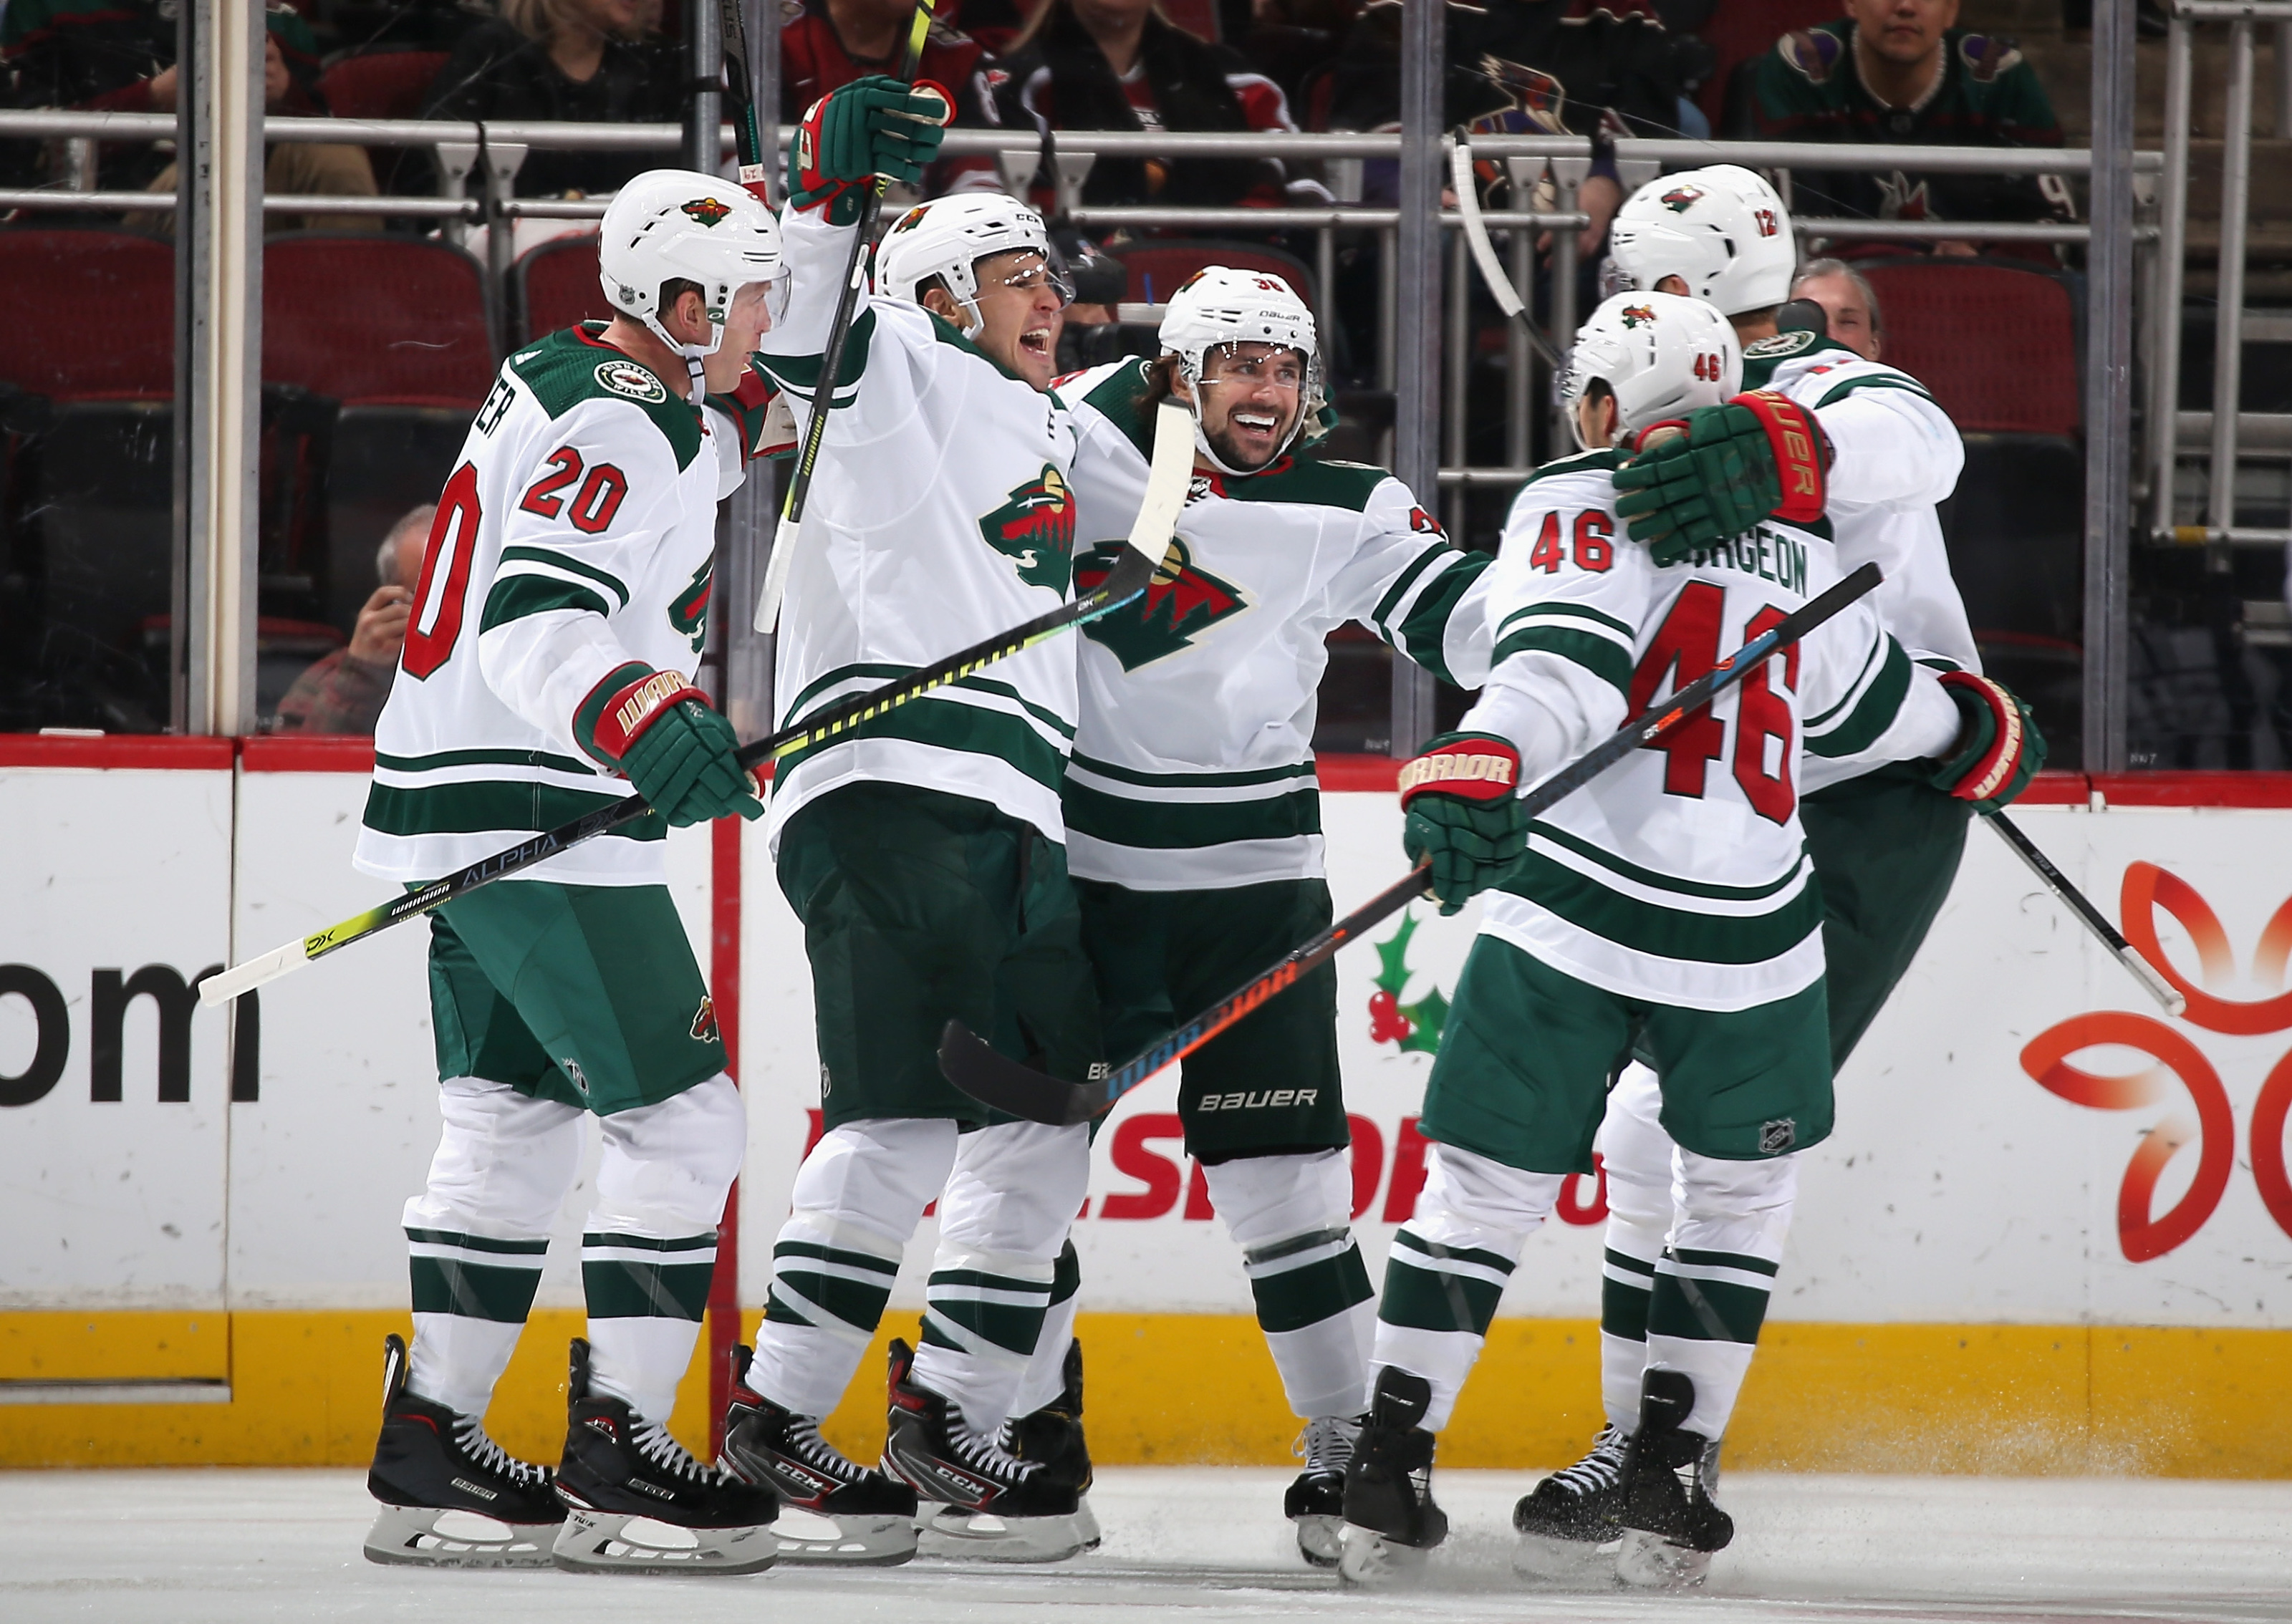 Should the Minnesota Wild want to make the playoffs?